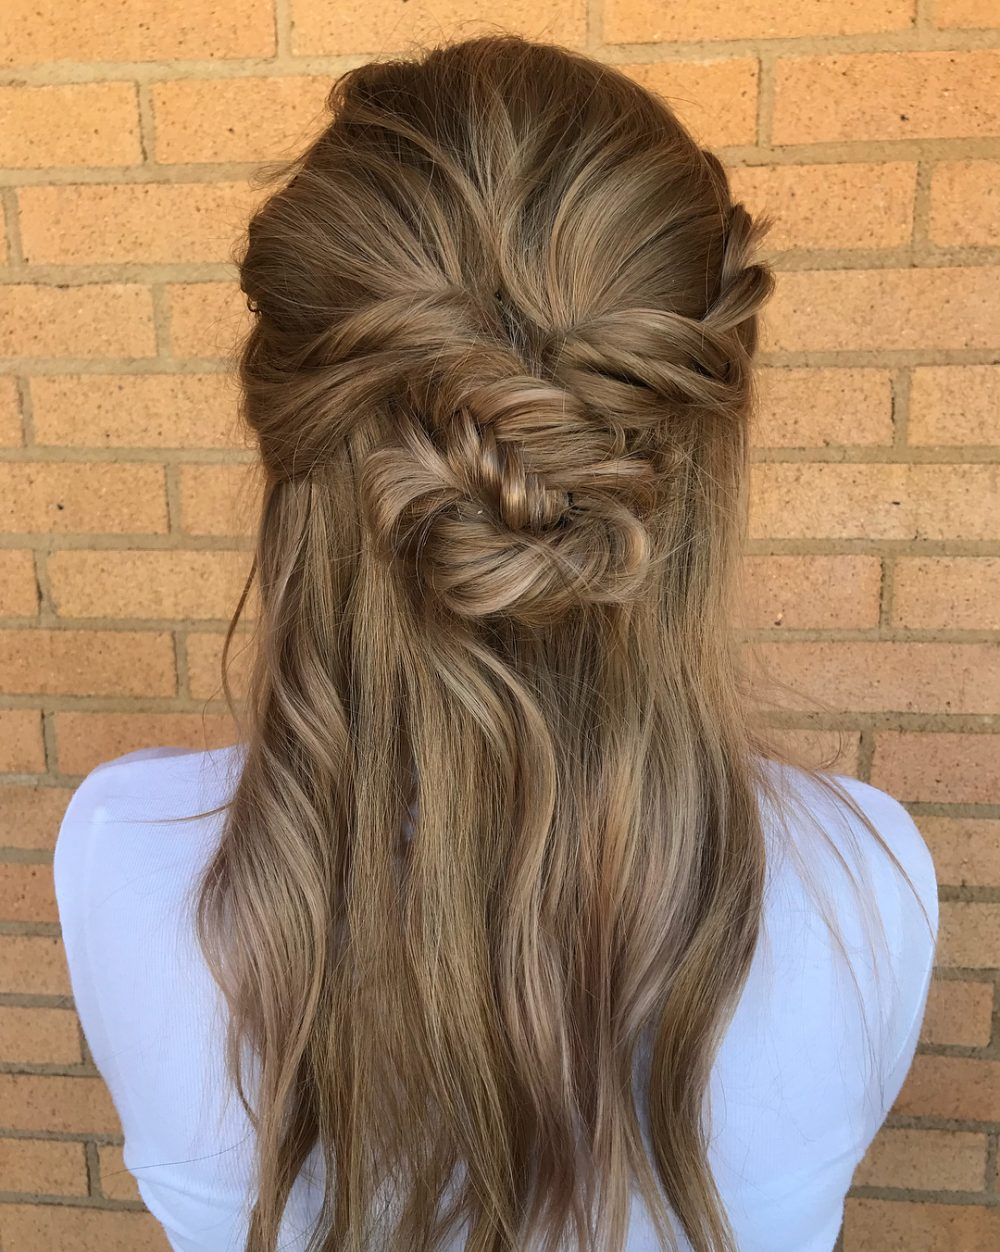 23 Cute Prom Hairstyles for 2019 - Updos, Braids, Half Ups & Down Dos